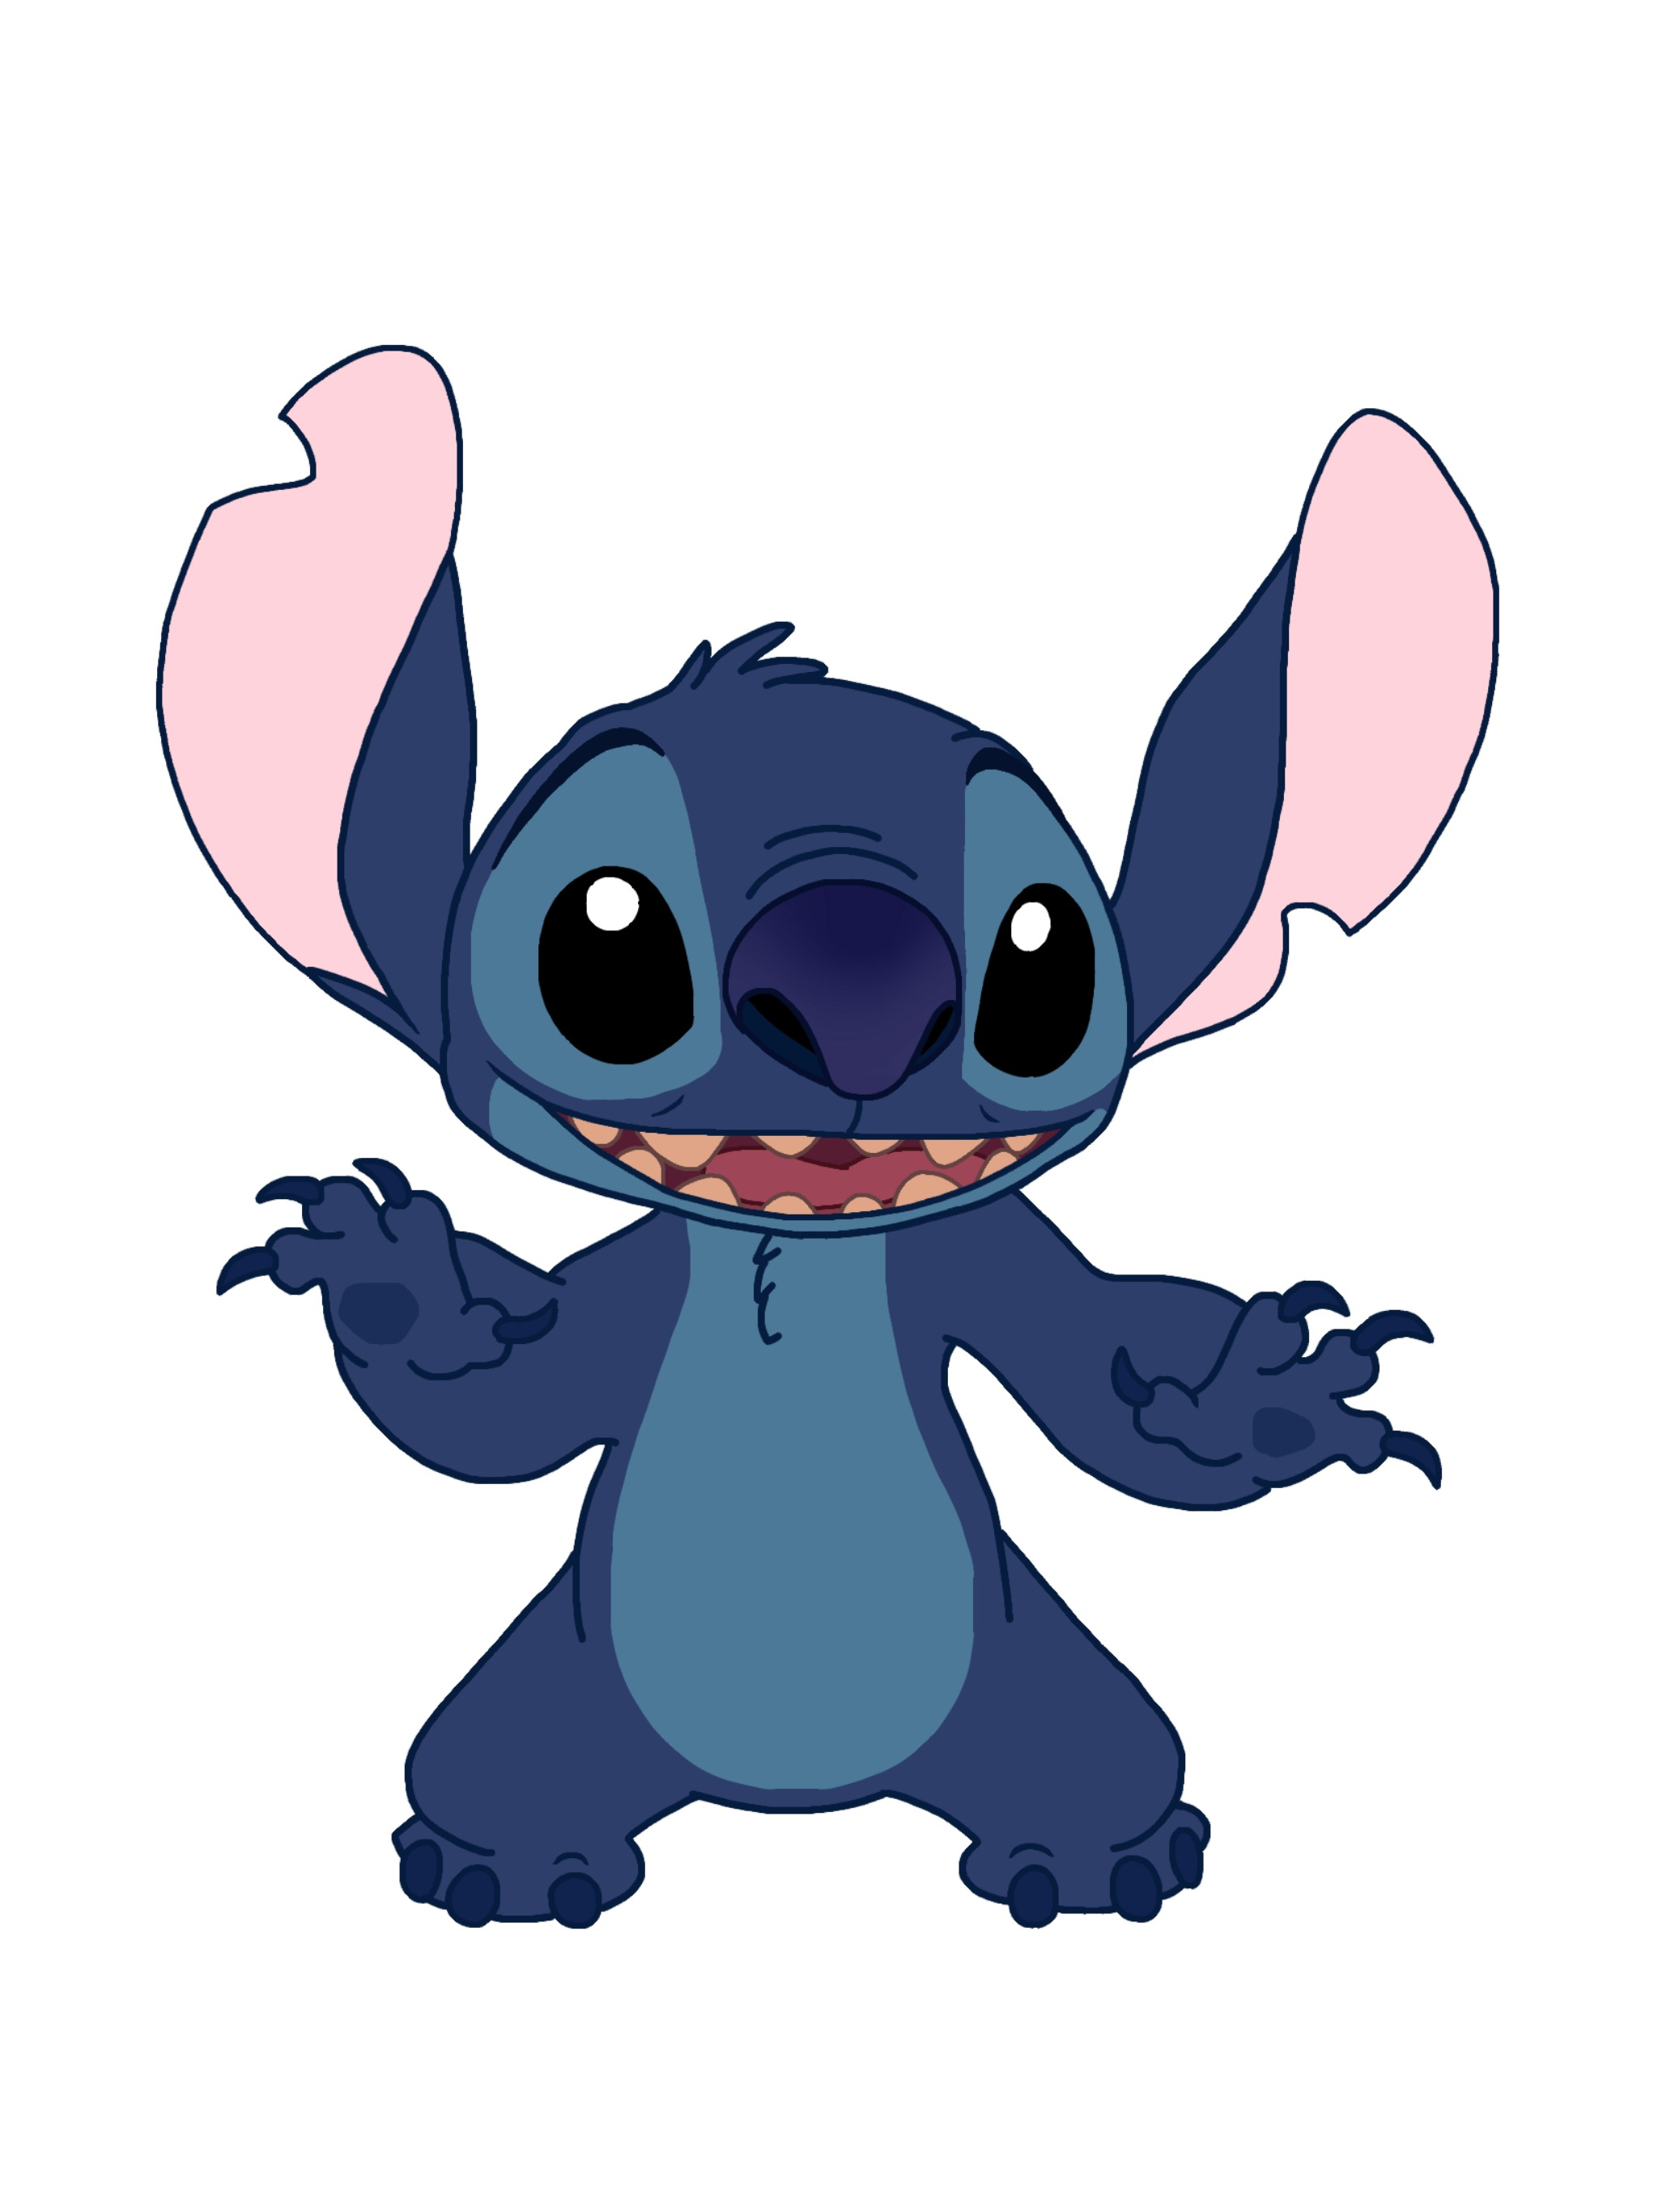 It's just a graphic of Superb Pics of Lilo and Stitch